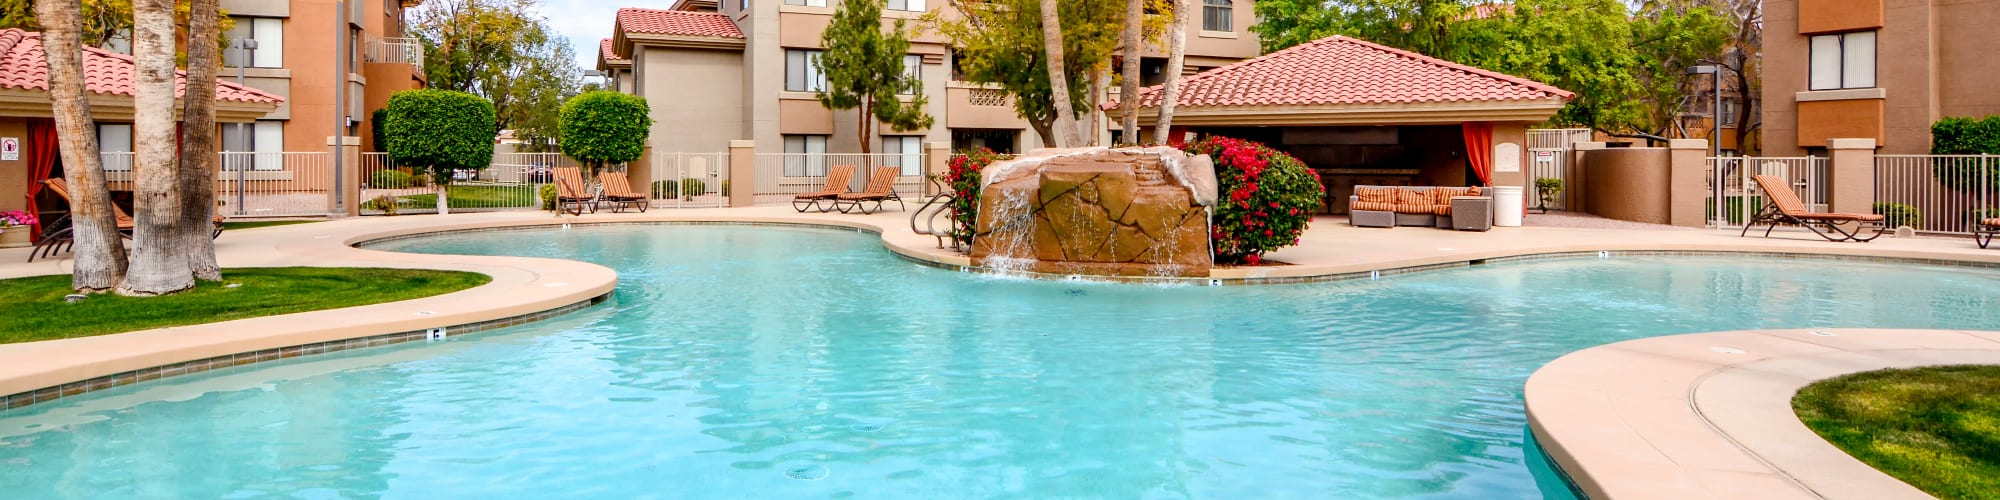 Amenities at The Palms on Scottsdale in Tempe, Arizona